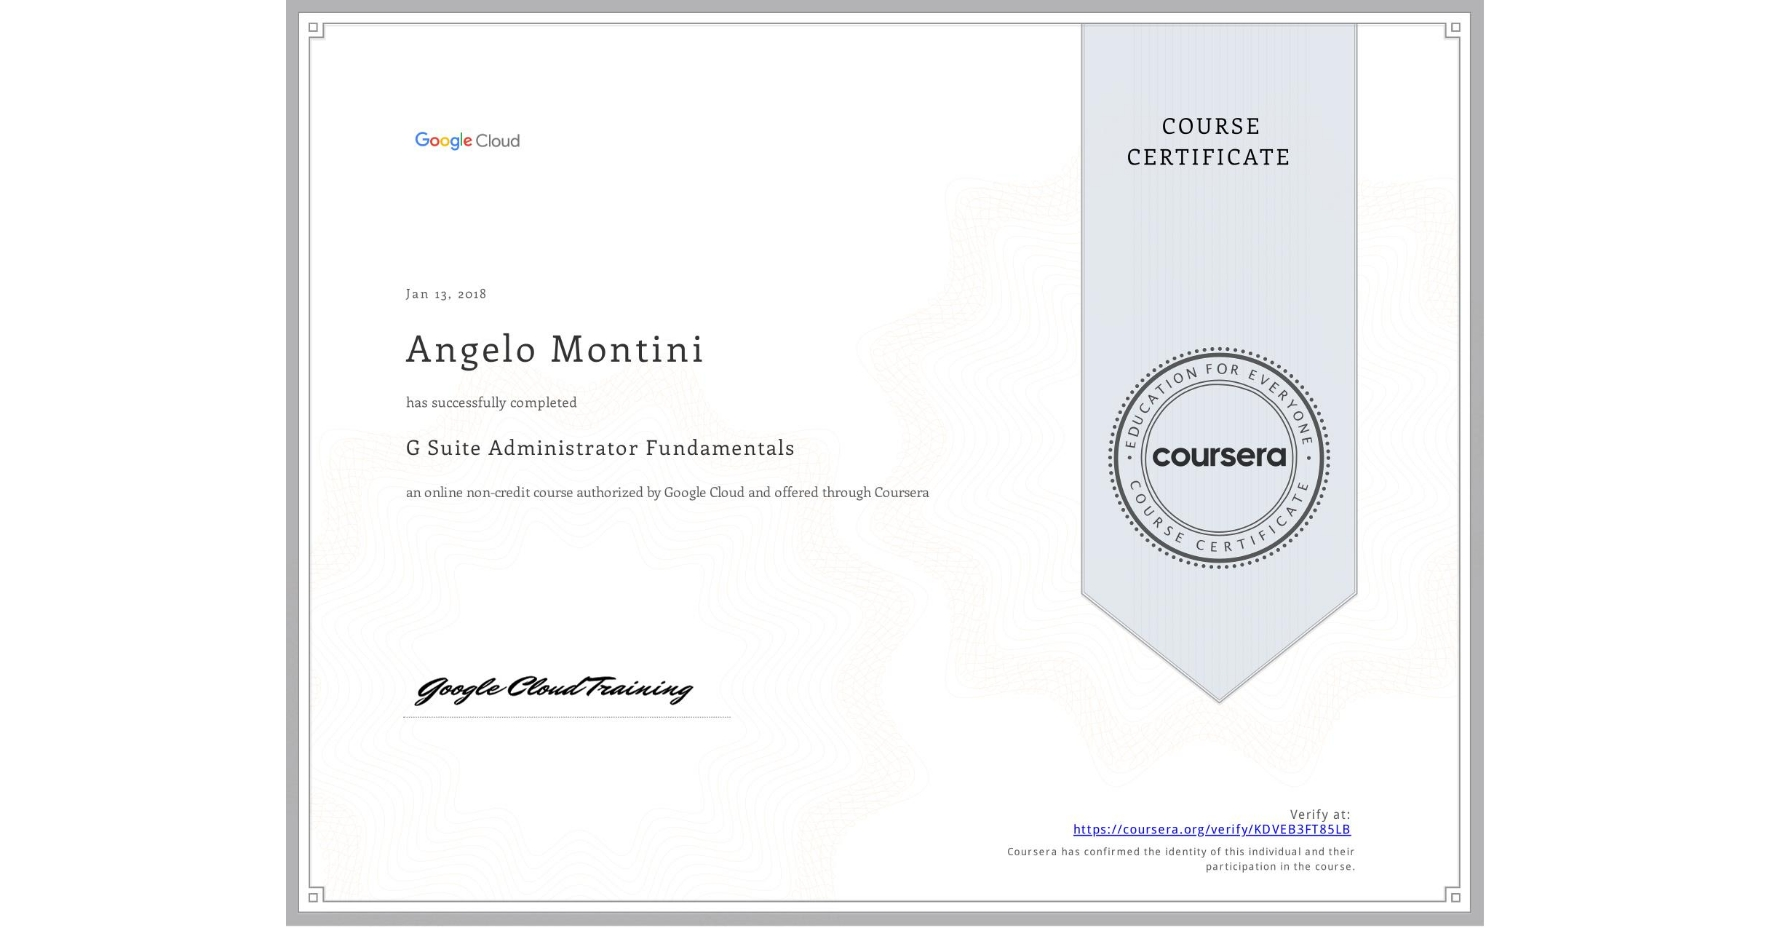 View certificate for Angelo Montini, G Suite Administrator Fundamentals, an online non-credit course authorized by Google Cloud and offered through Coursera